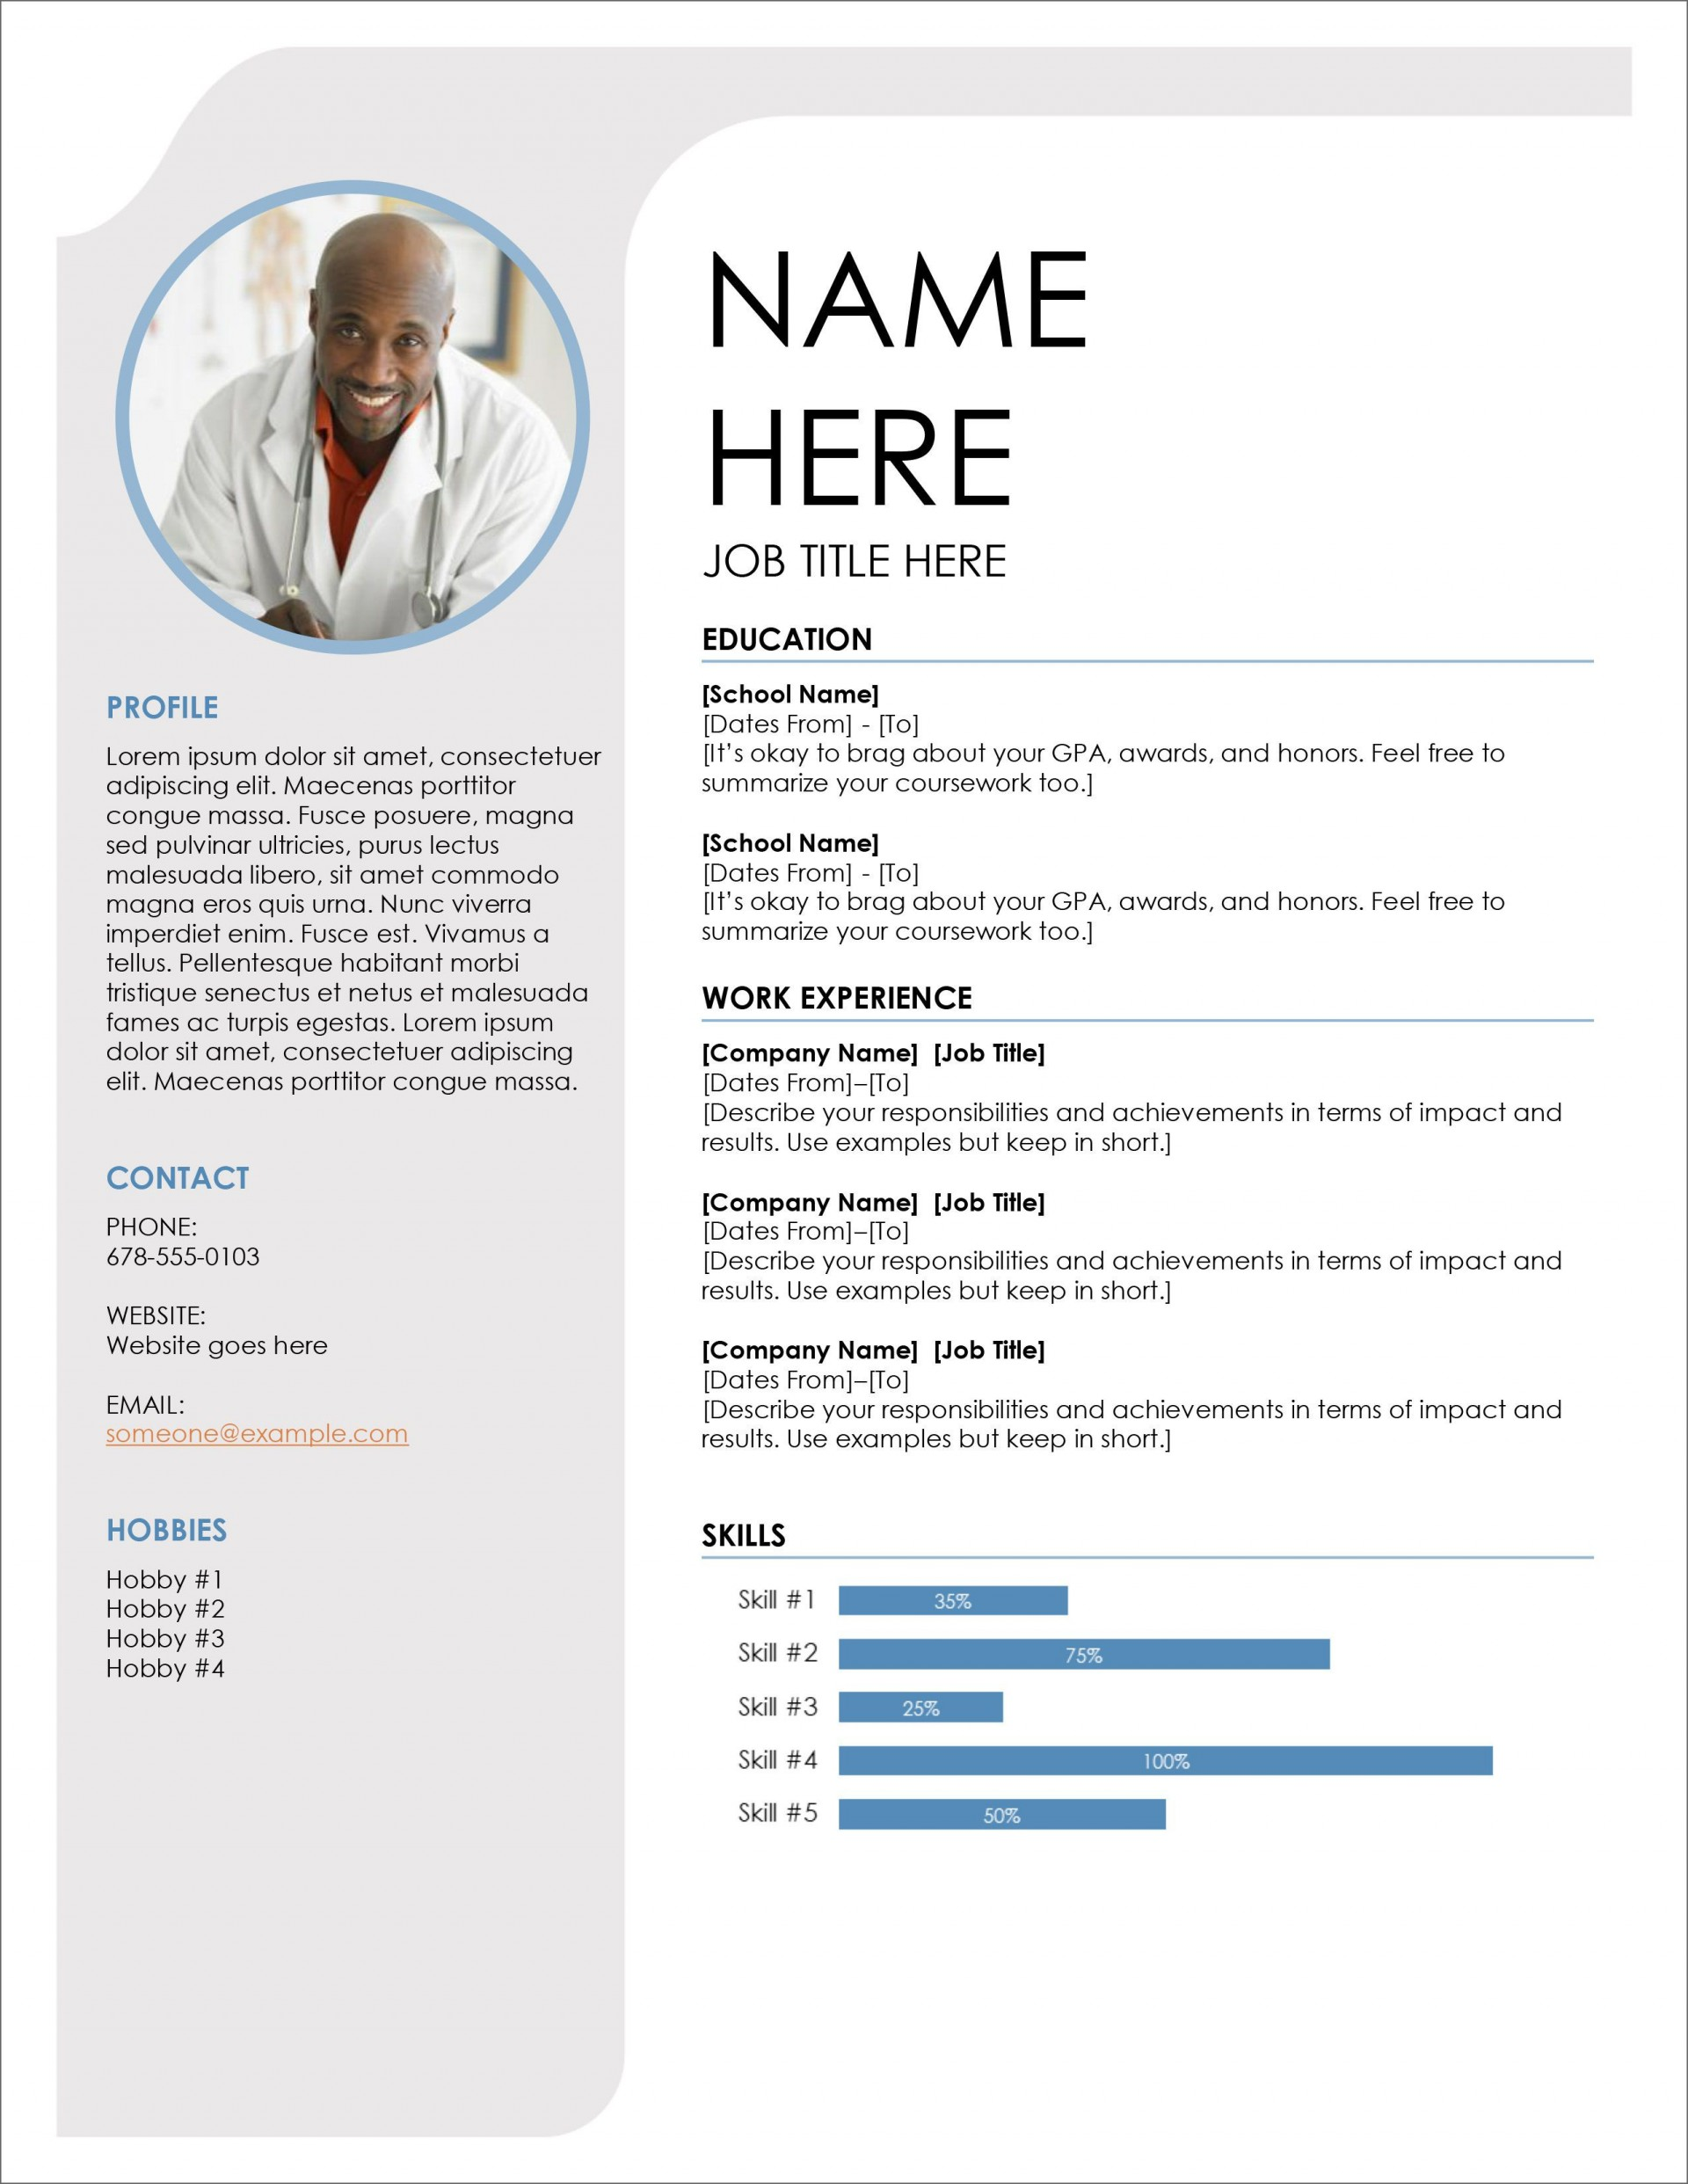 007 Magnificent Resume Template Word Free Download 2019 Photo  Cv1920